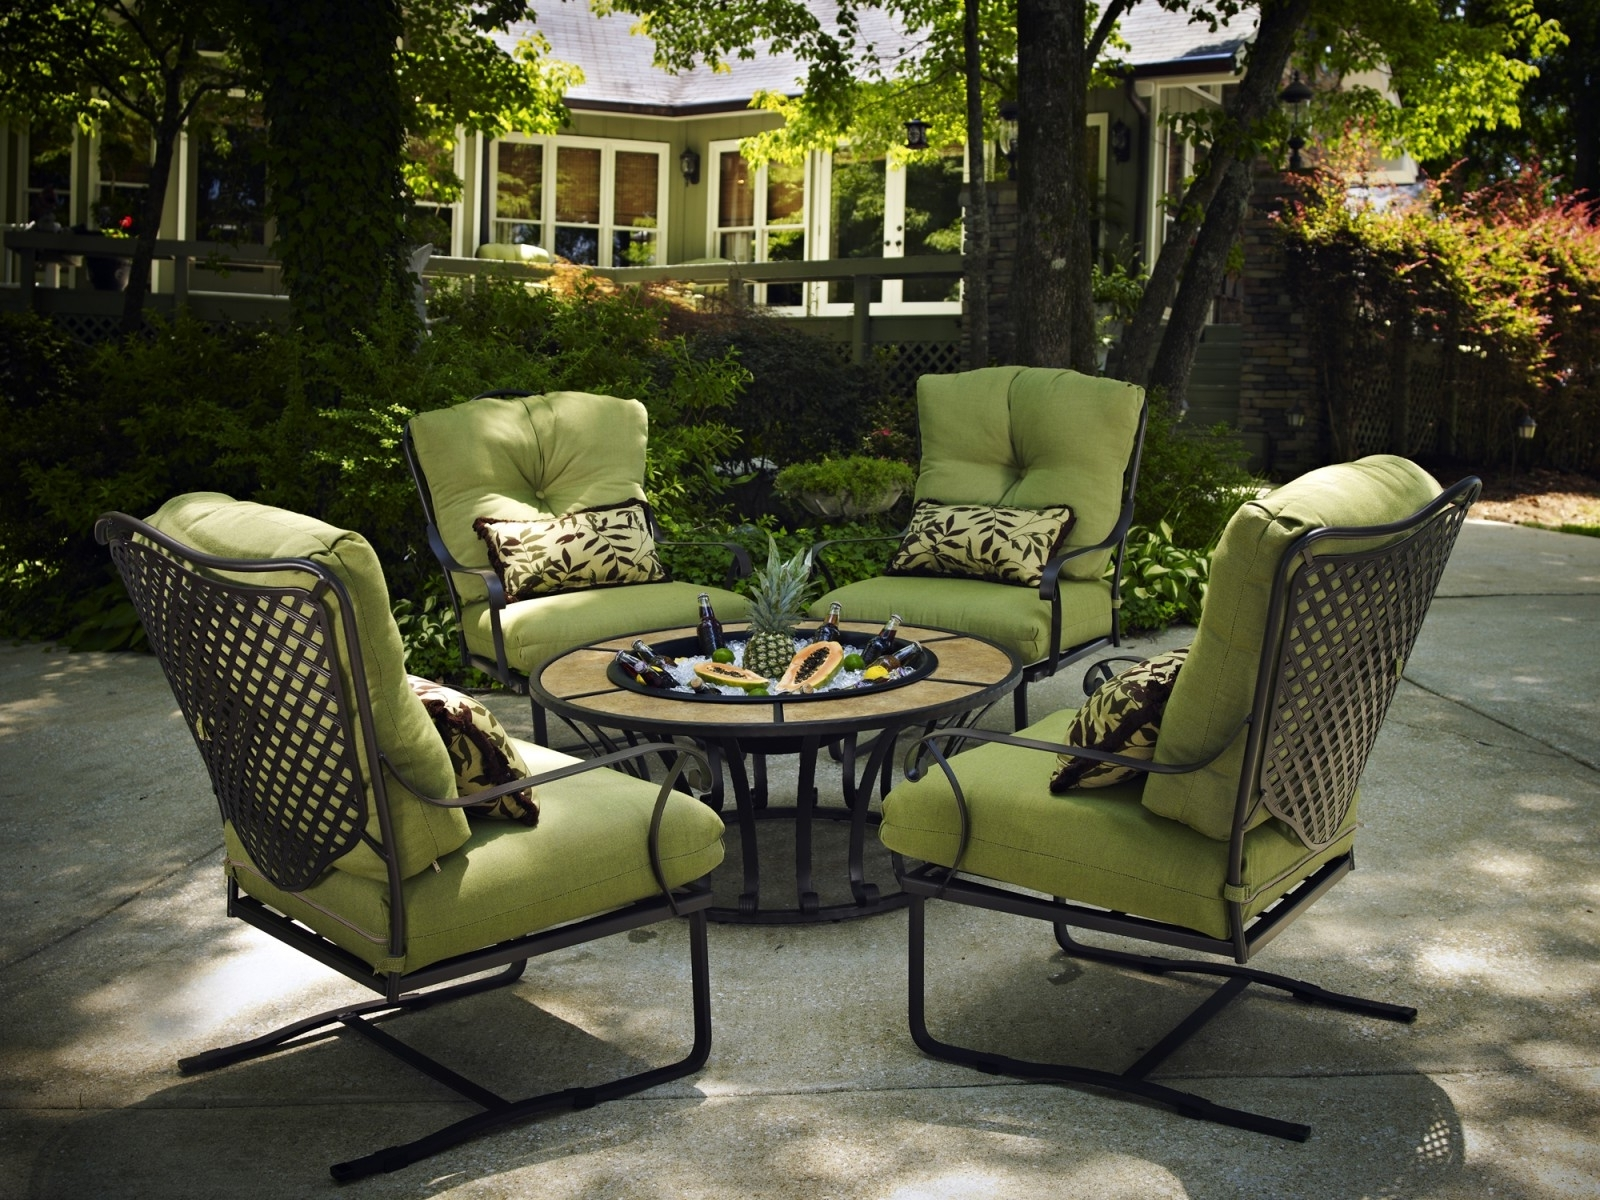 Patio : Wrought Iron Patio Furnitureca Furniture Value Plantation Throughout Most Recently Released Black Patio Conversation Sets (View 13 of 20)